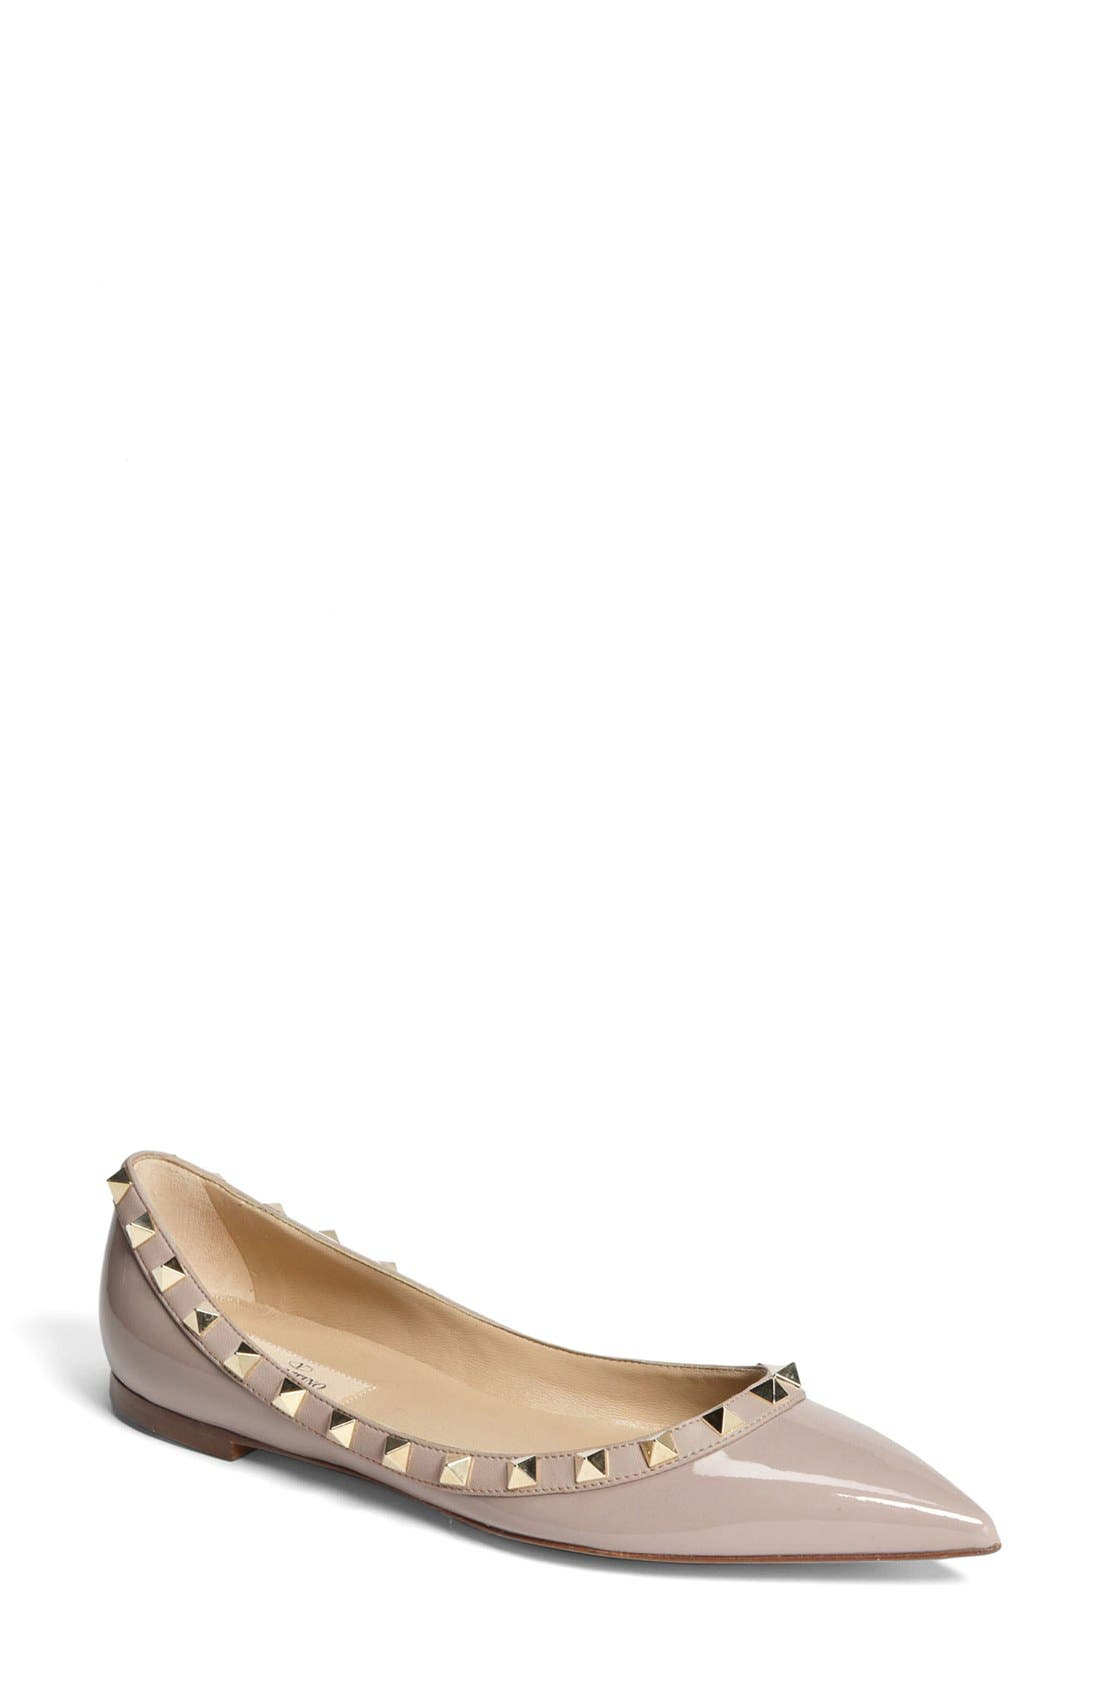 Ballet Flats Ballerina Shoes for Women On Sale, Black, Leather, 2017, 3.5 Valentino